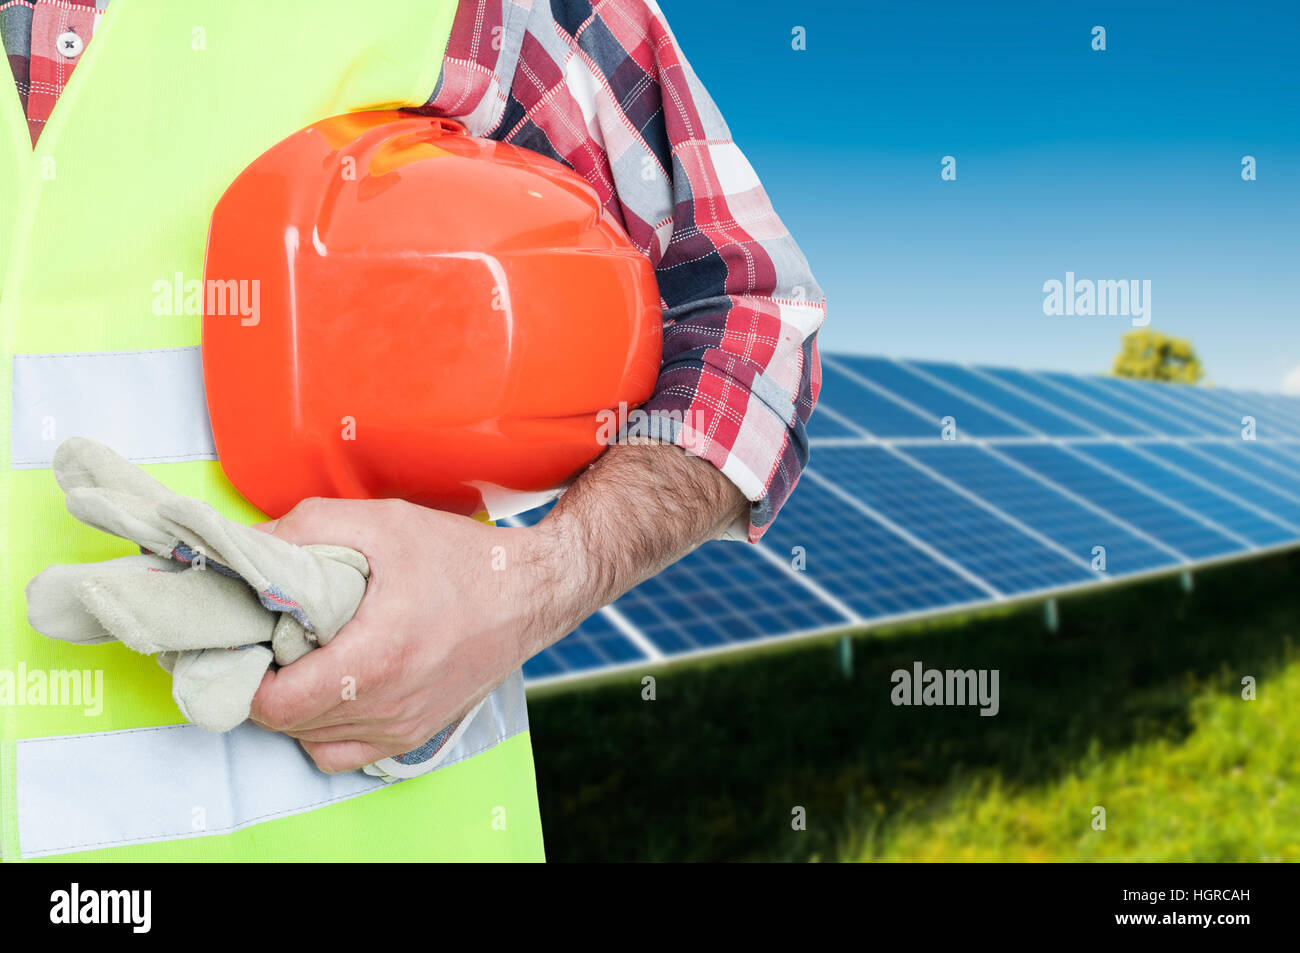 Male worker at photovoltaic panels holding safety uniform in close-up view with advertising area - Stock Image